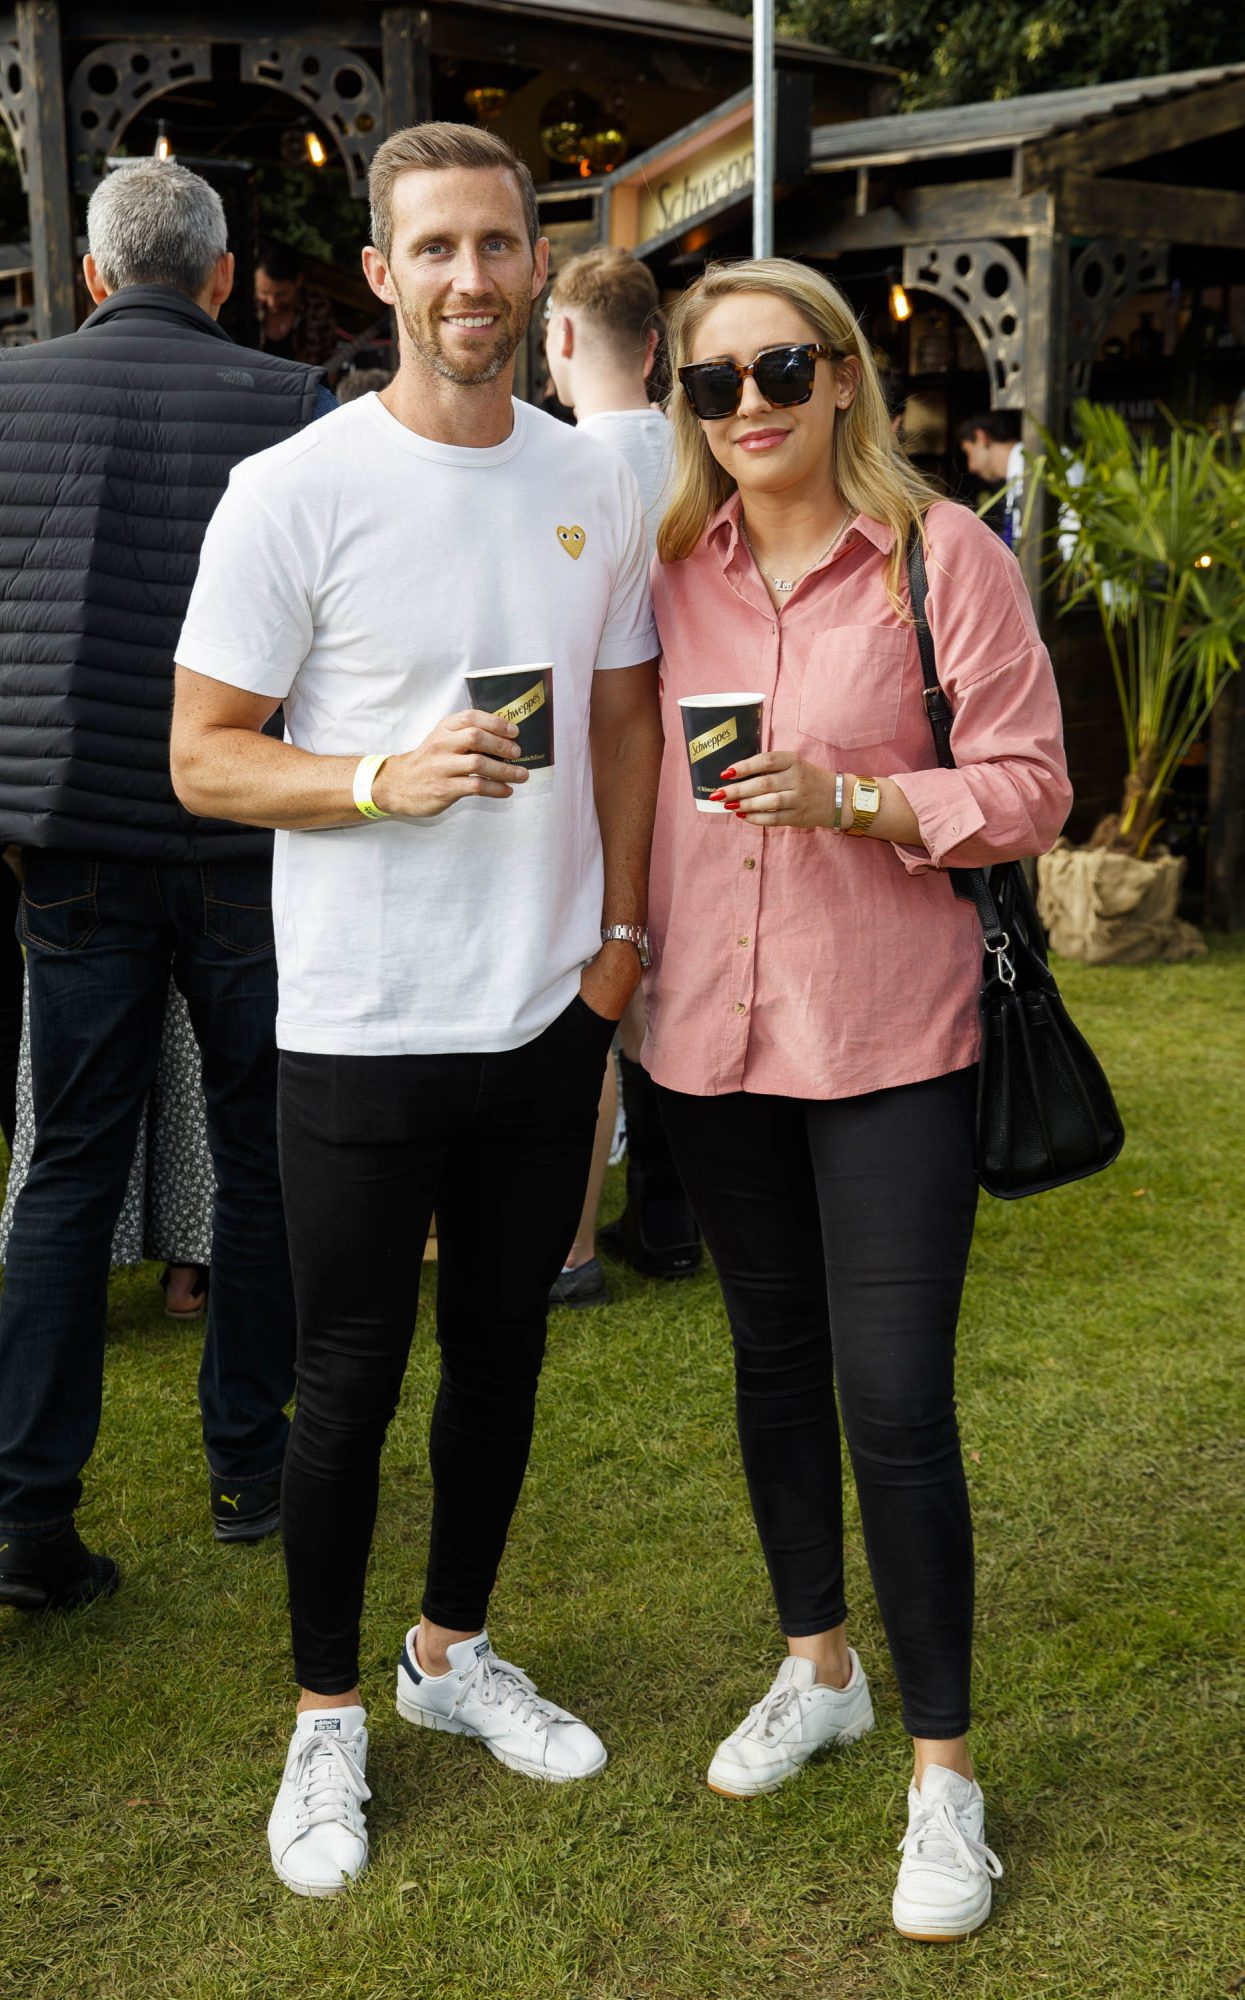 Liam Rusted and Tara Byrnes at the Schweppes #UltimateMixer Sessions at The Big Grill festival in Herbert Park, Dublin, where guests sipped on expertly crafted cocktails and enjoyed live music mixes from Irish bands and DJs. Picture: Andres Poveda